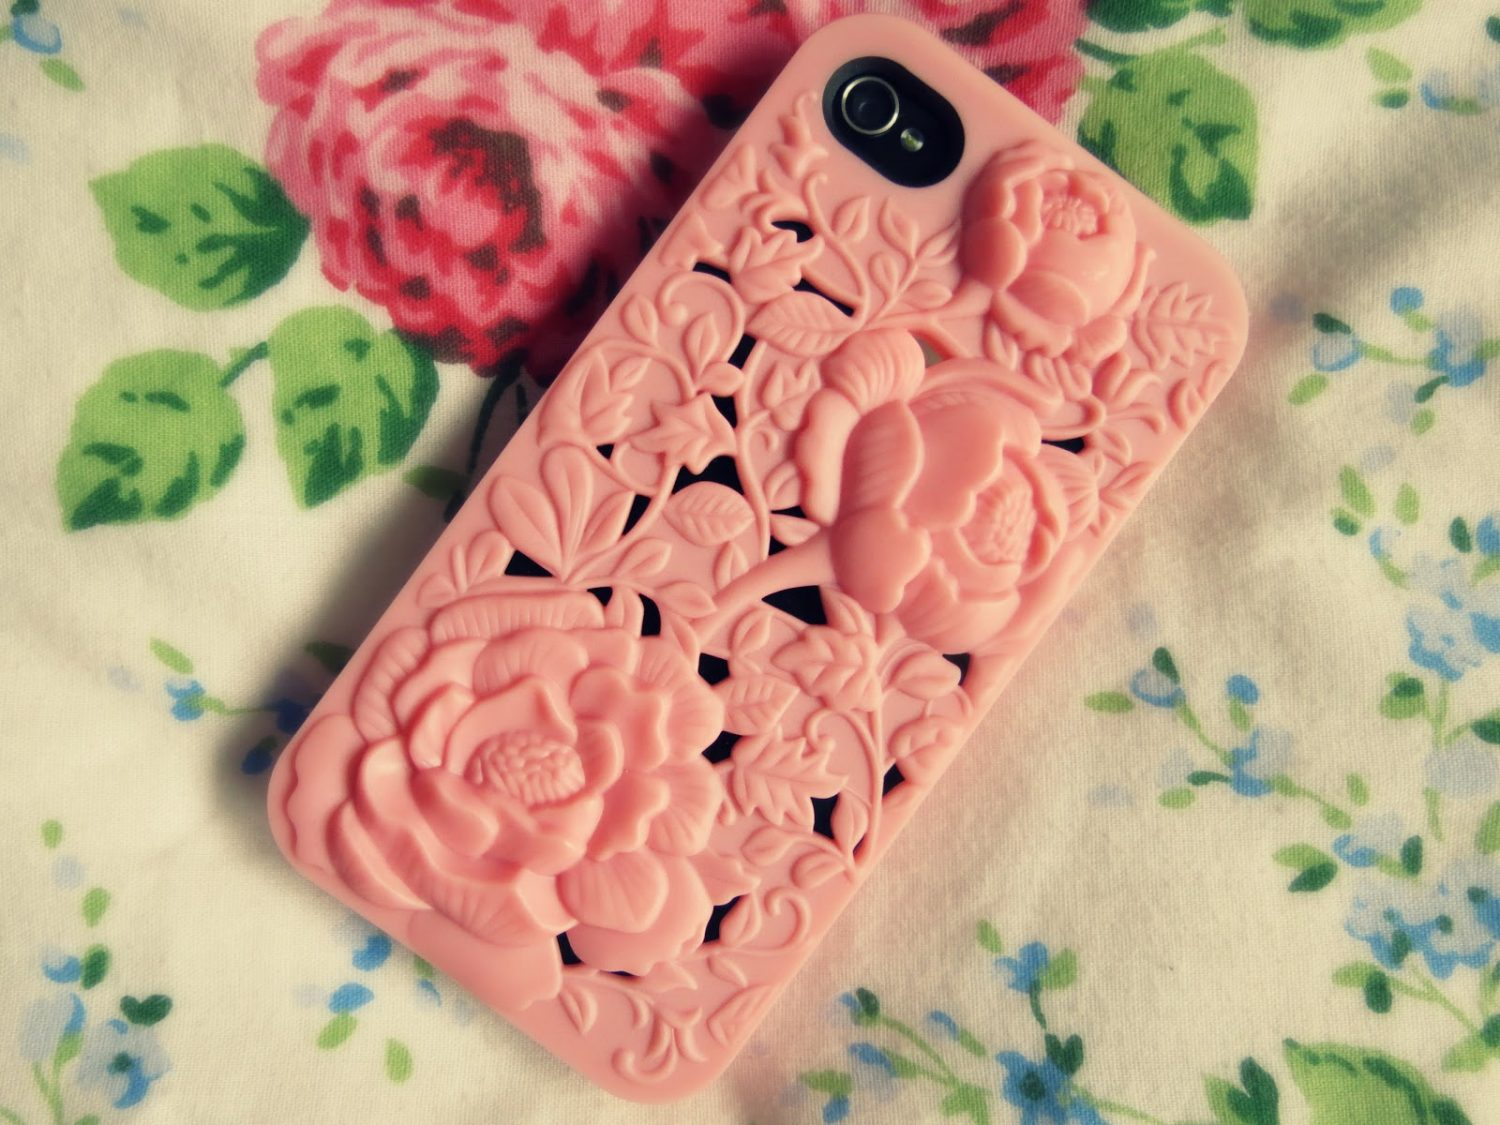 rose cut out flower vintage shabby chic pink iphone case ebay cheap 4 4s 5